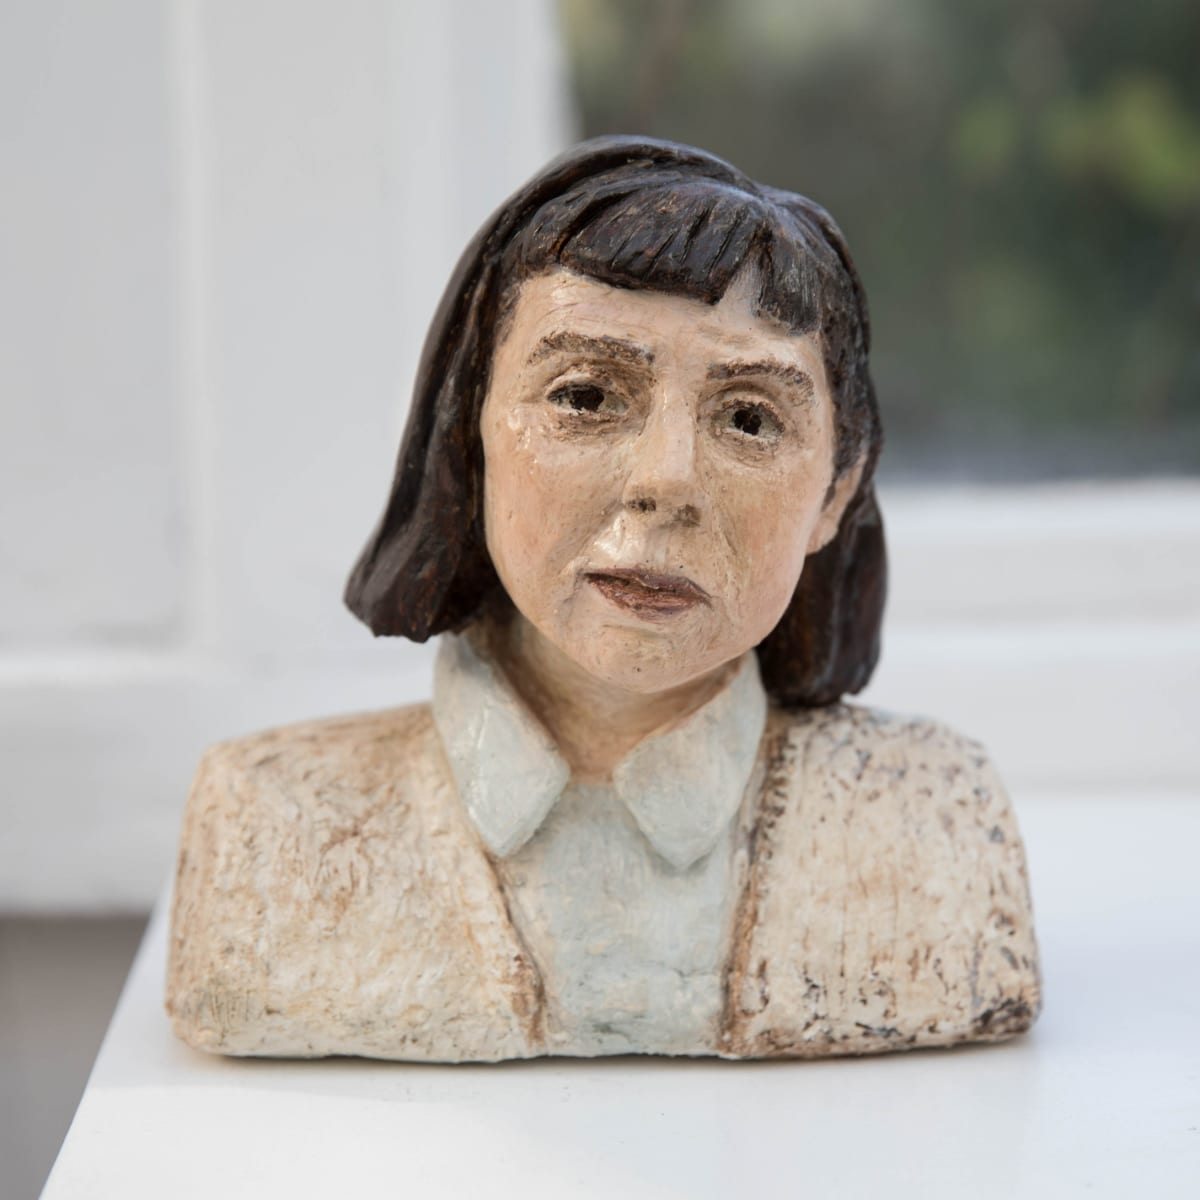 Nicole Farhi Carson McCullers ciment fondu and acrylic; hand-painted bronze casts available to purchase 18 x 15 x 7 cm edition of 7 + 3 APs